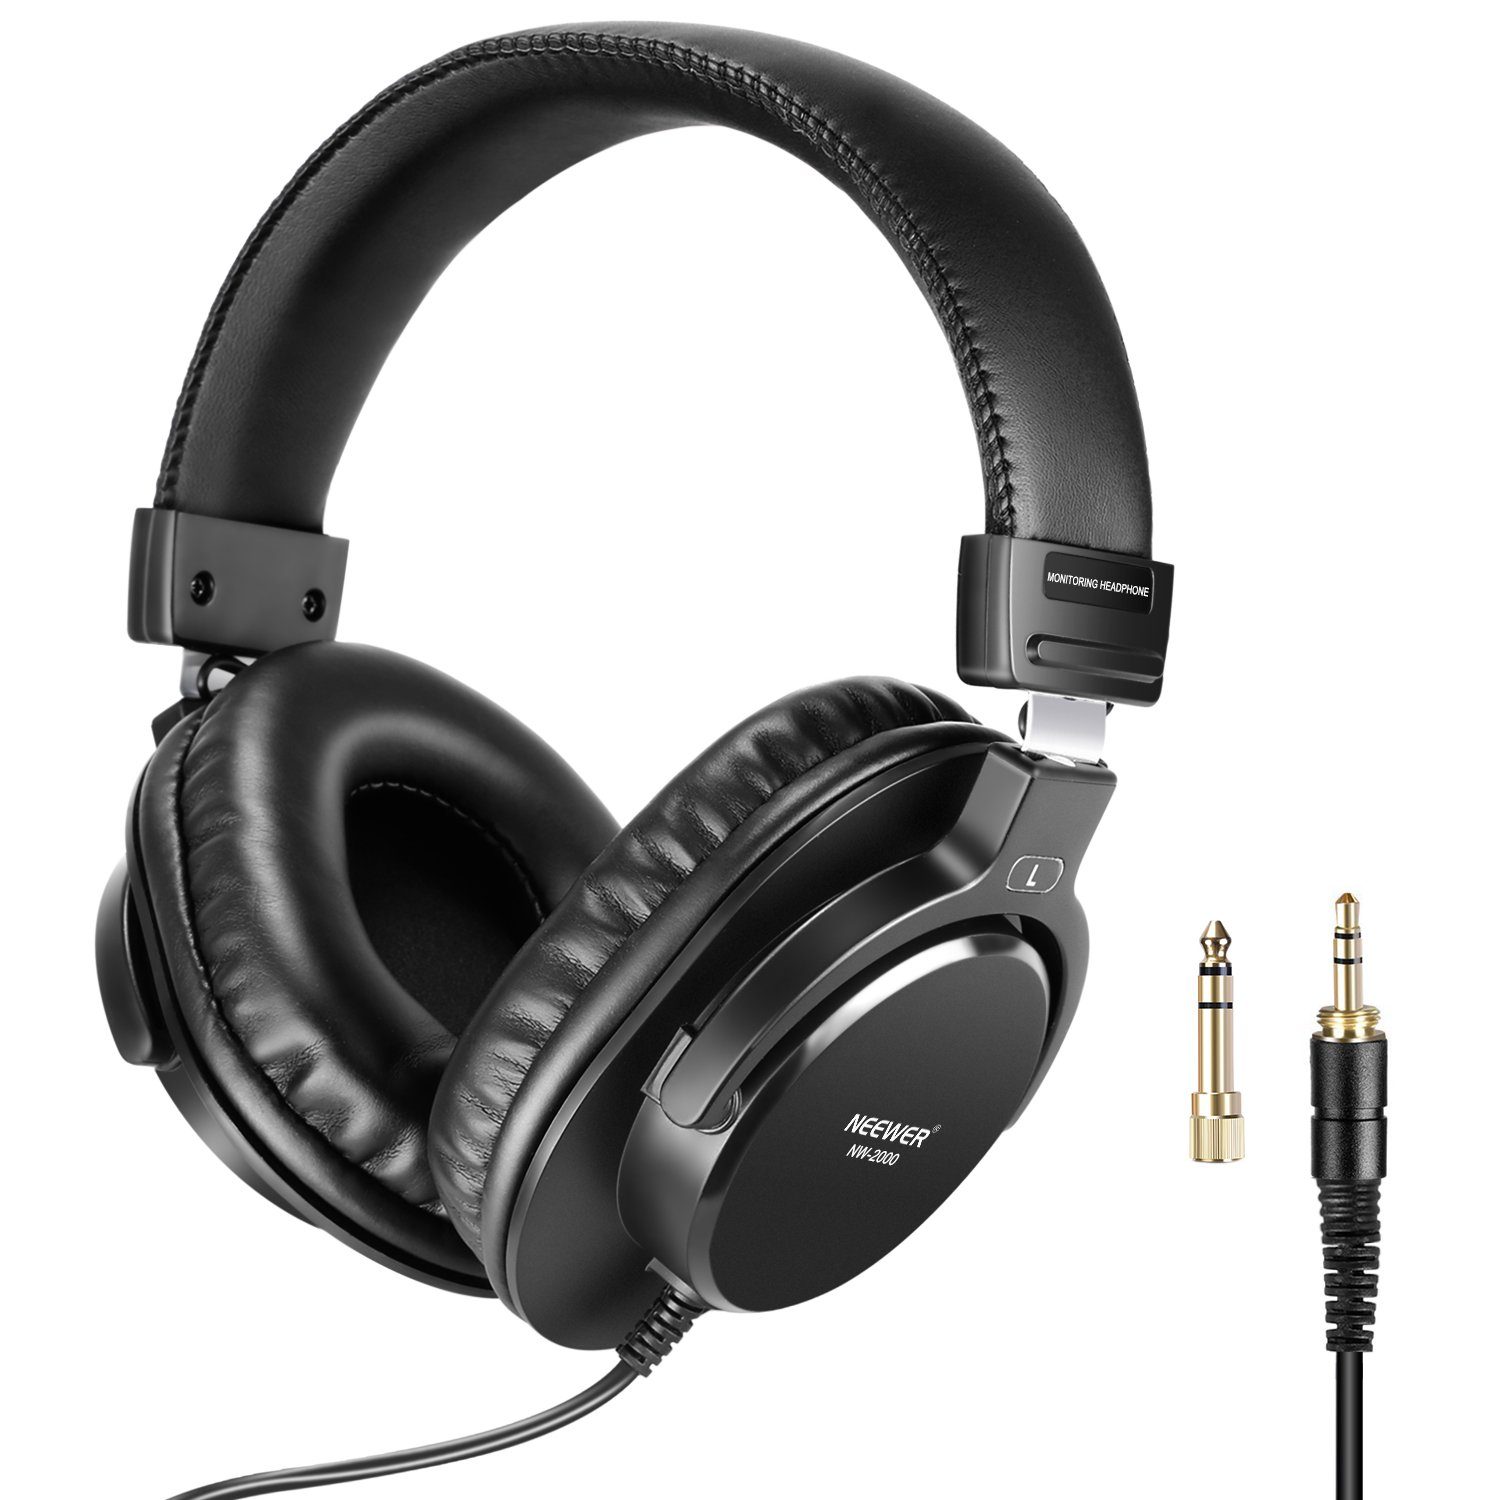 Neewer Studio Monitor Headphones – Dynamic Rotatable Headsets with 40mm Loudhailer Driver, 3 meters Cable, 6.35mm Plug Adapter for PC, Cell Phones, TV NW-2000